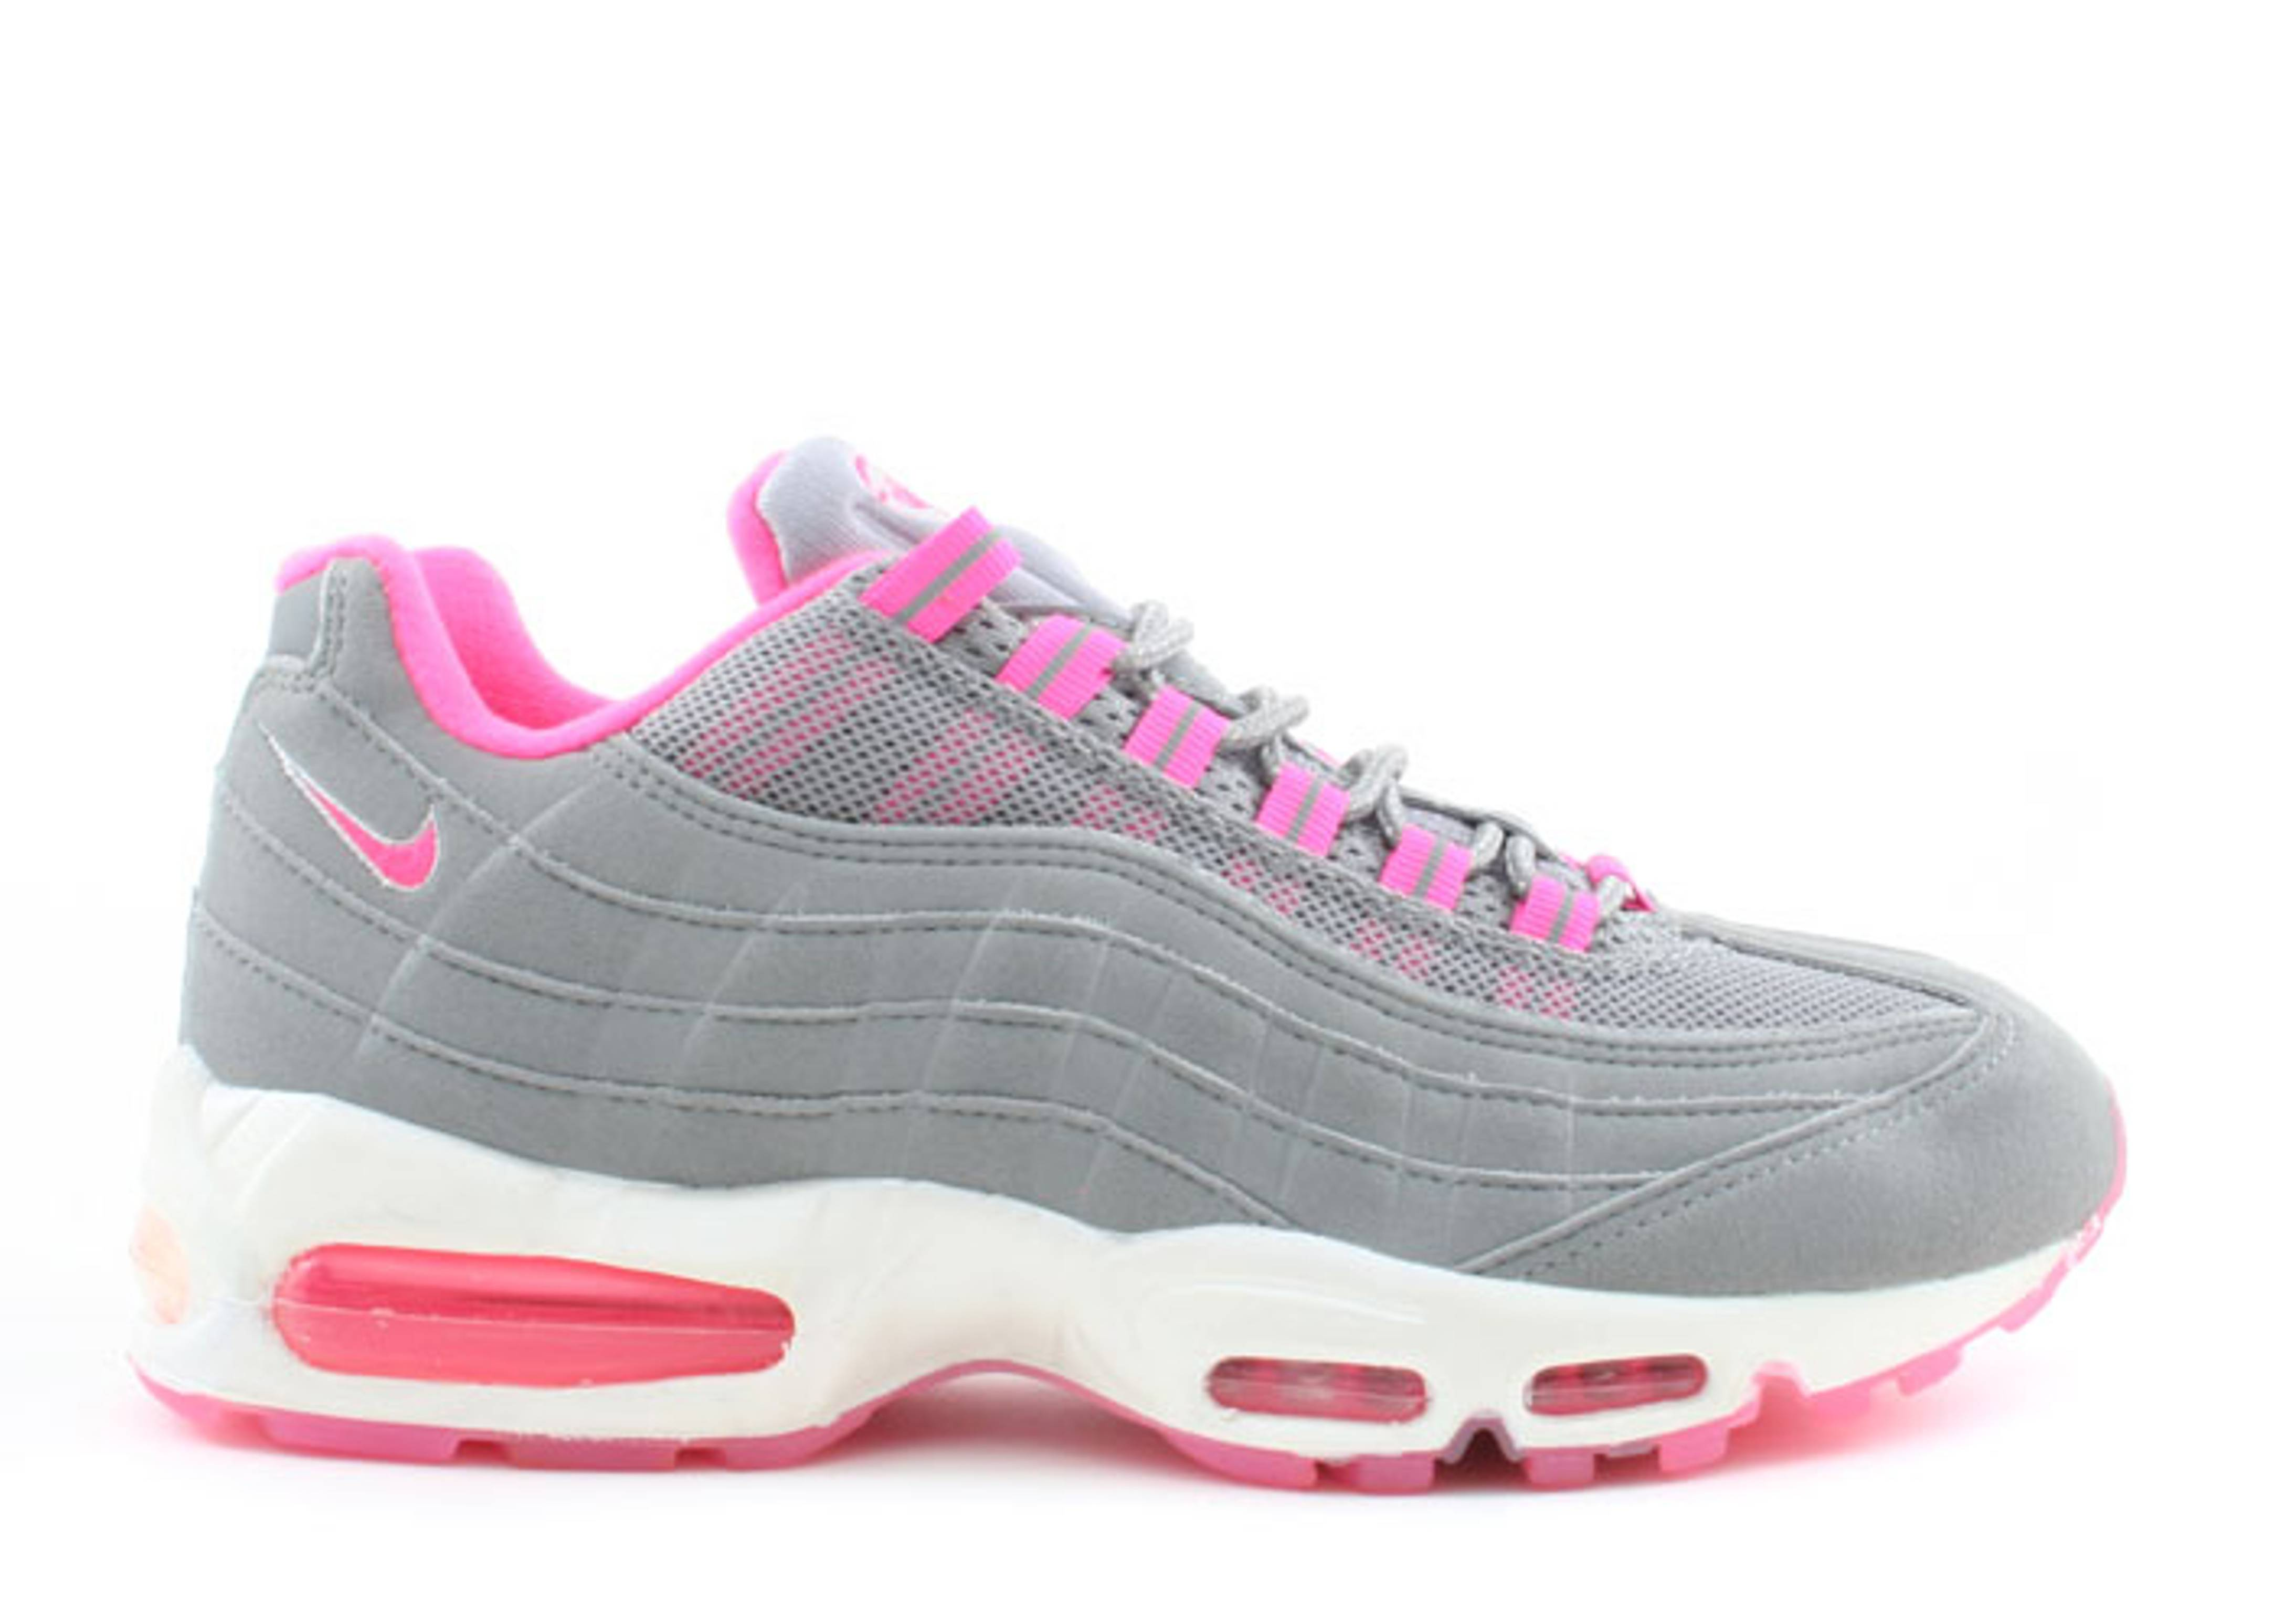 bcb08b0d71 best price cheap nike air max 95 womens pink white trainers shoes uk online  25134 5c7bc; get womens air max 95 623a2 58922